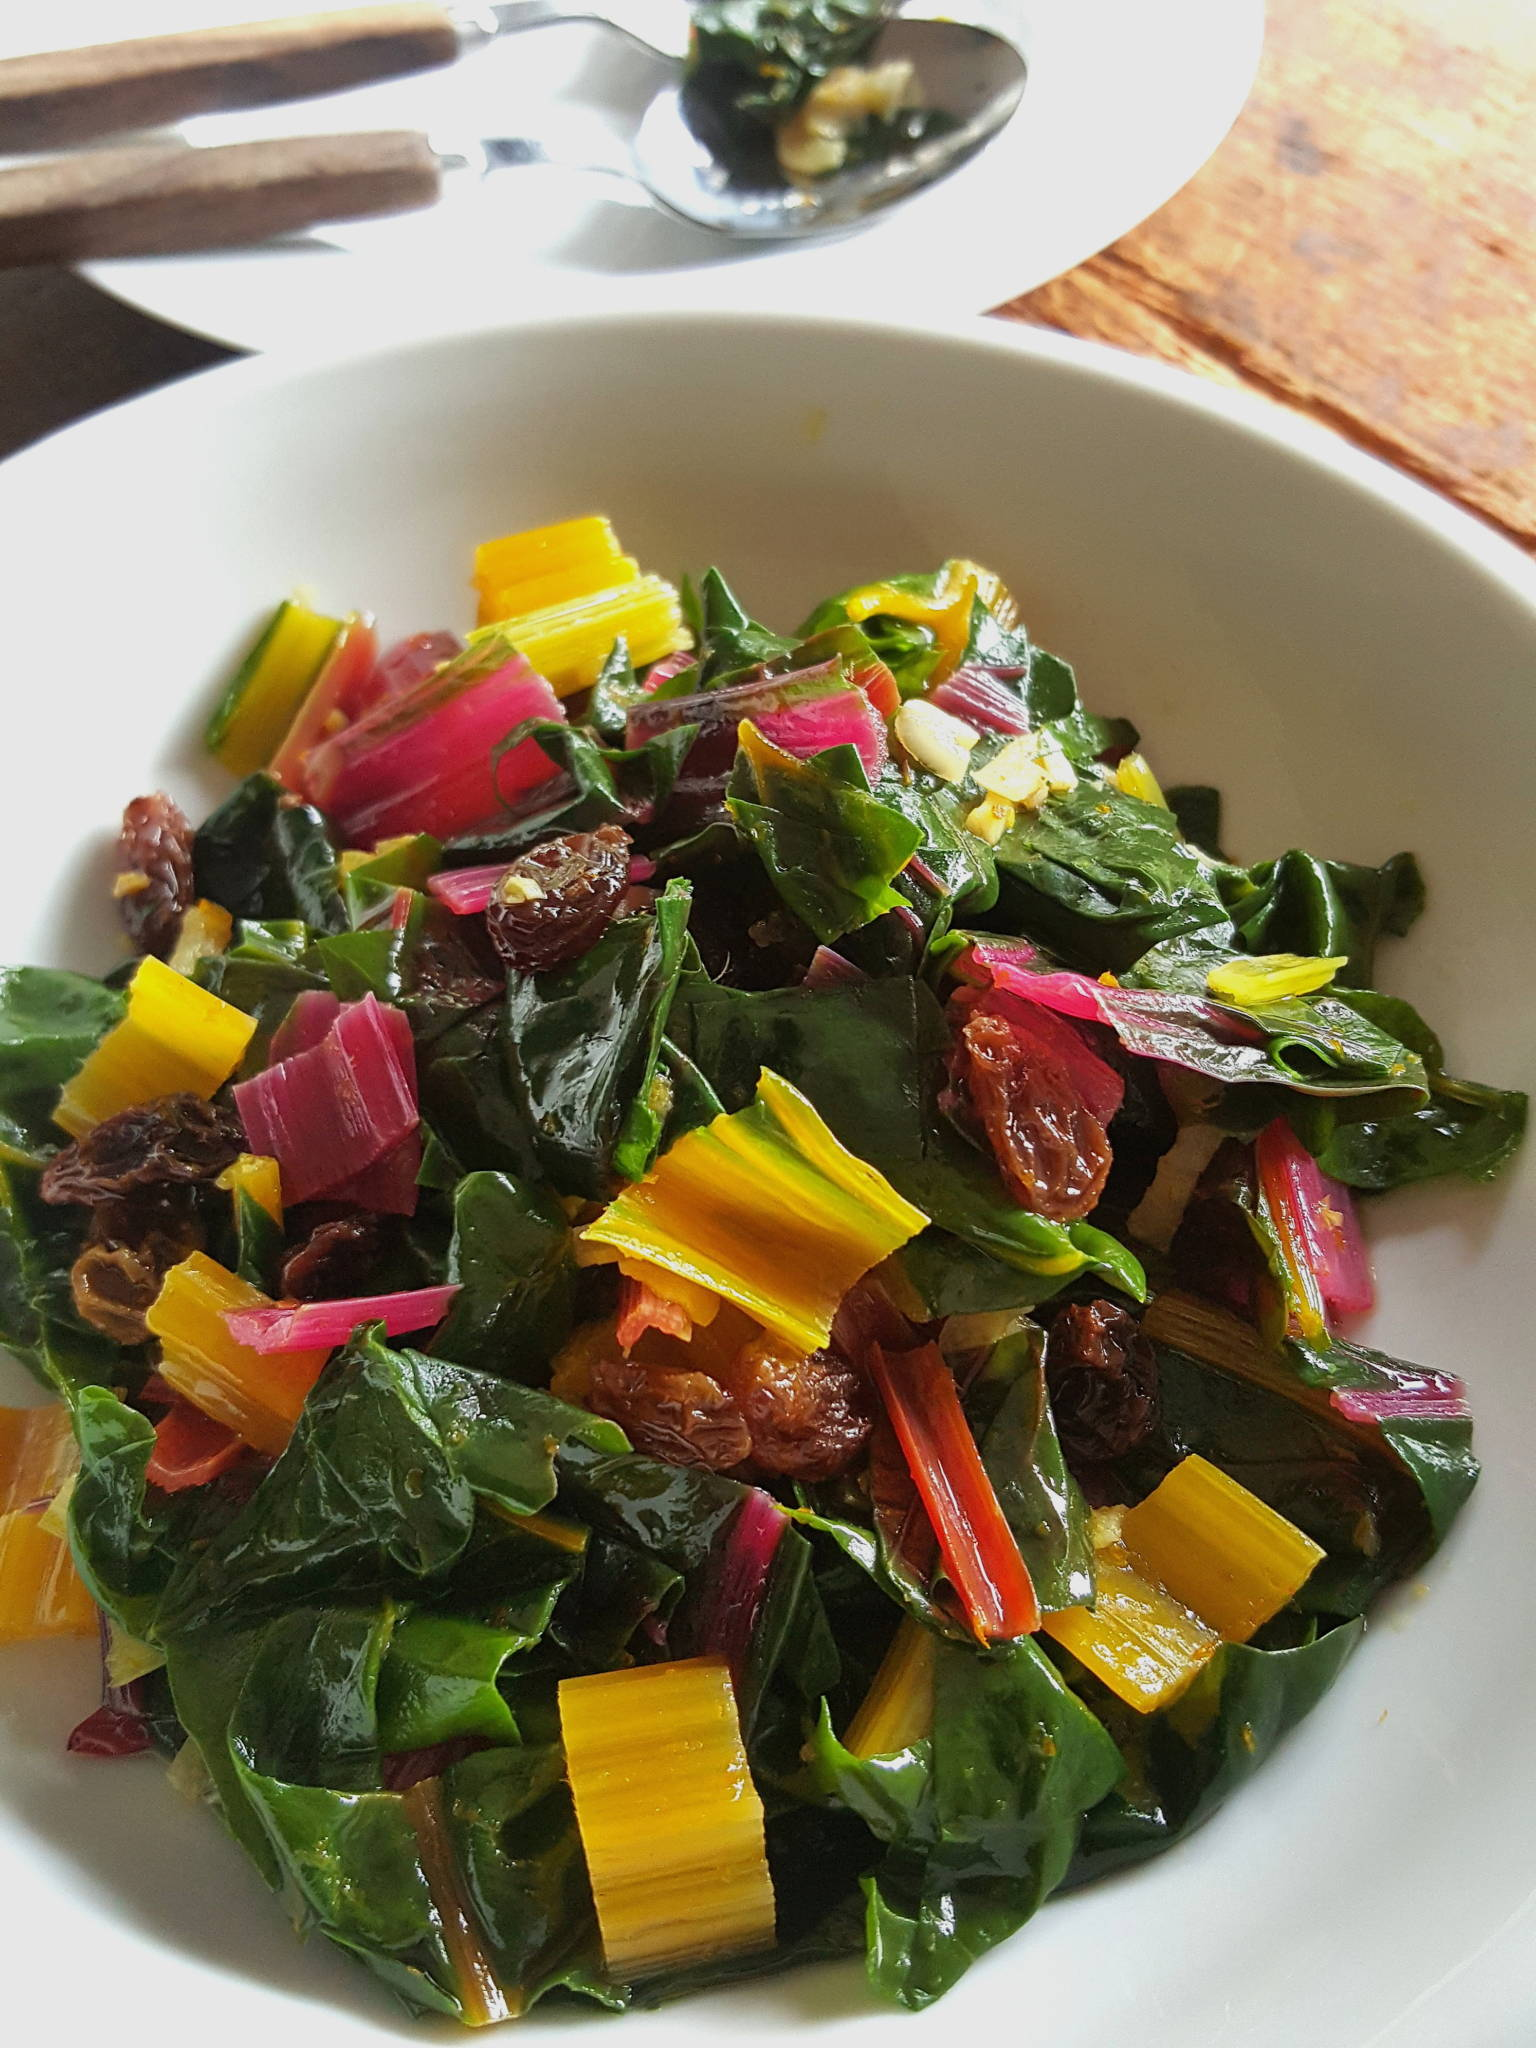 Rainbow chard with raisins 1